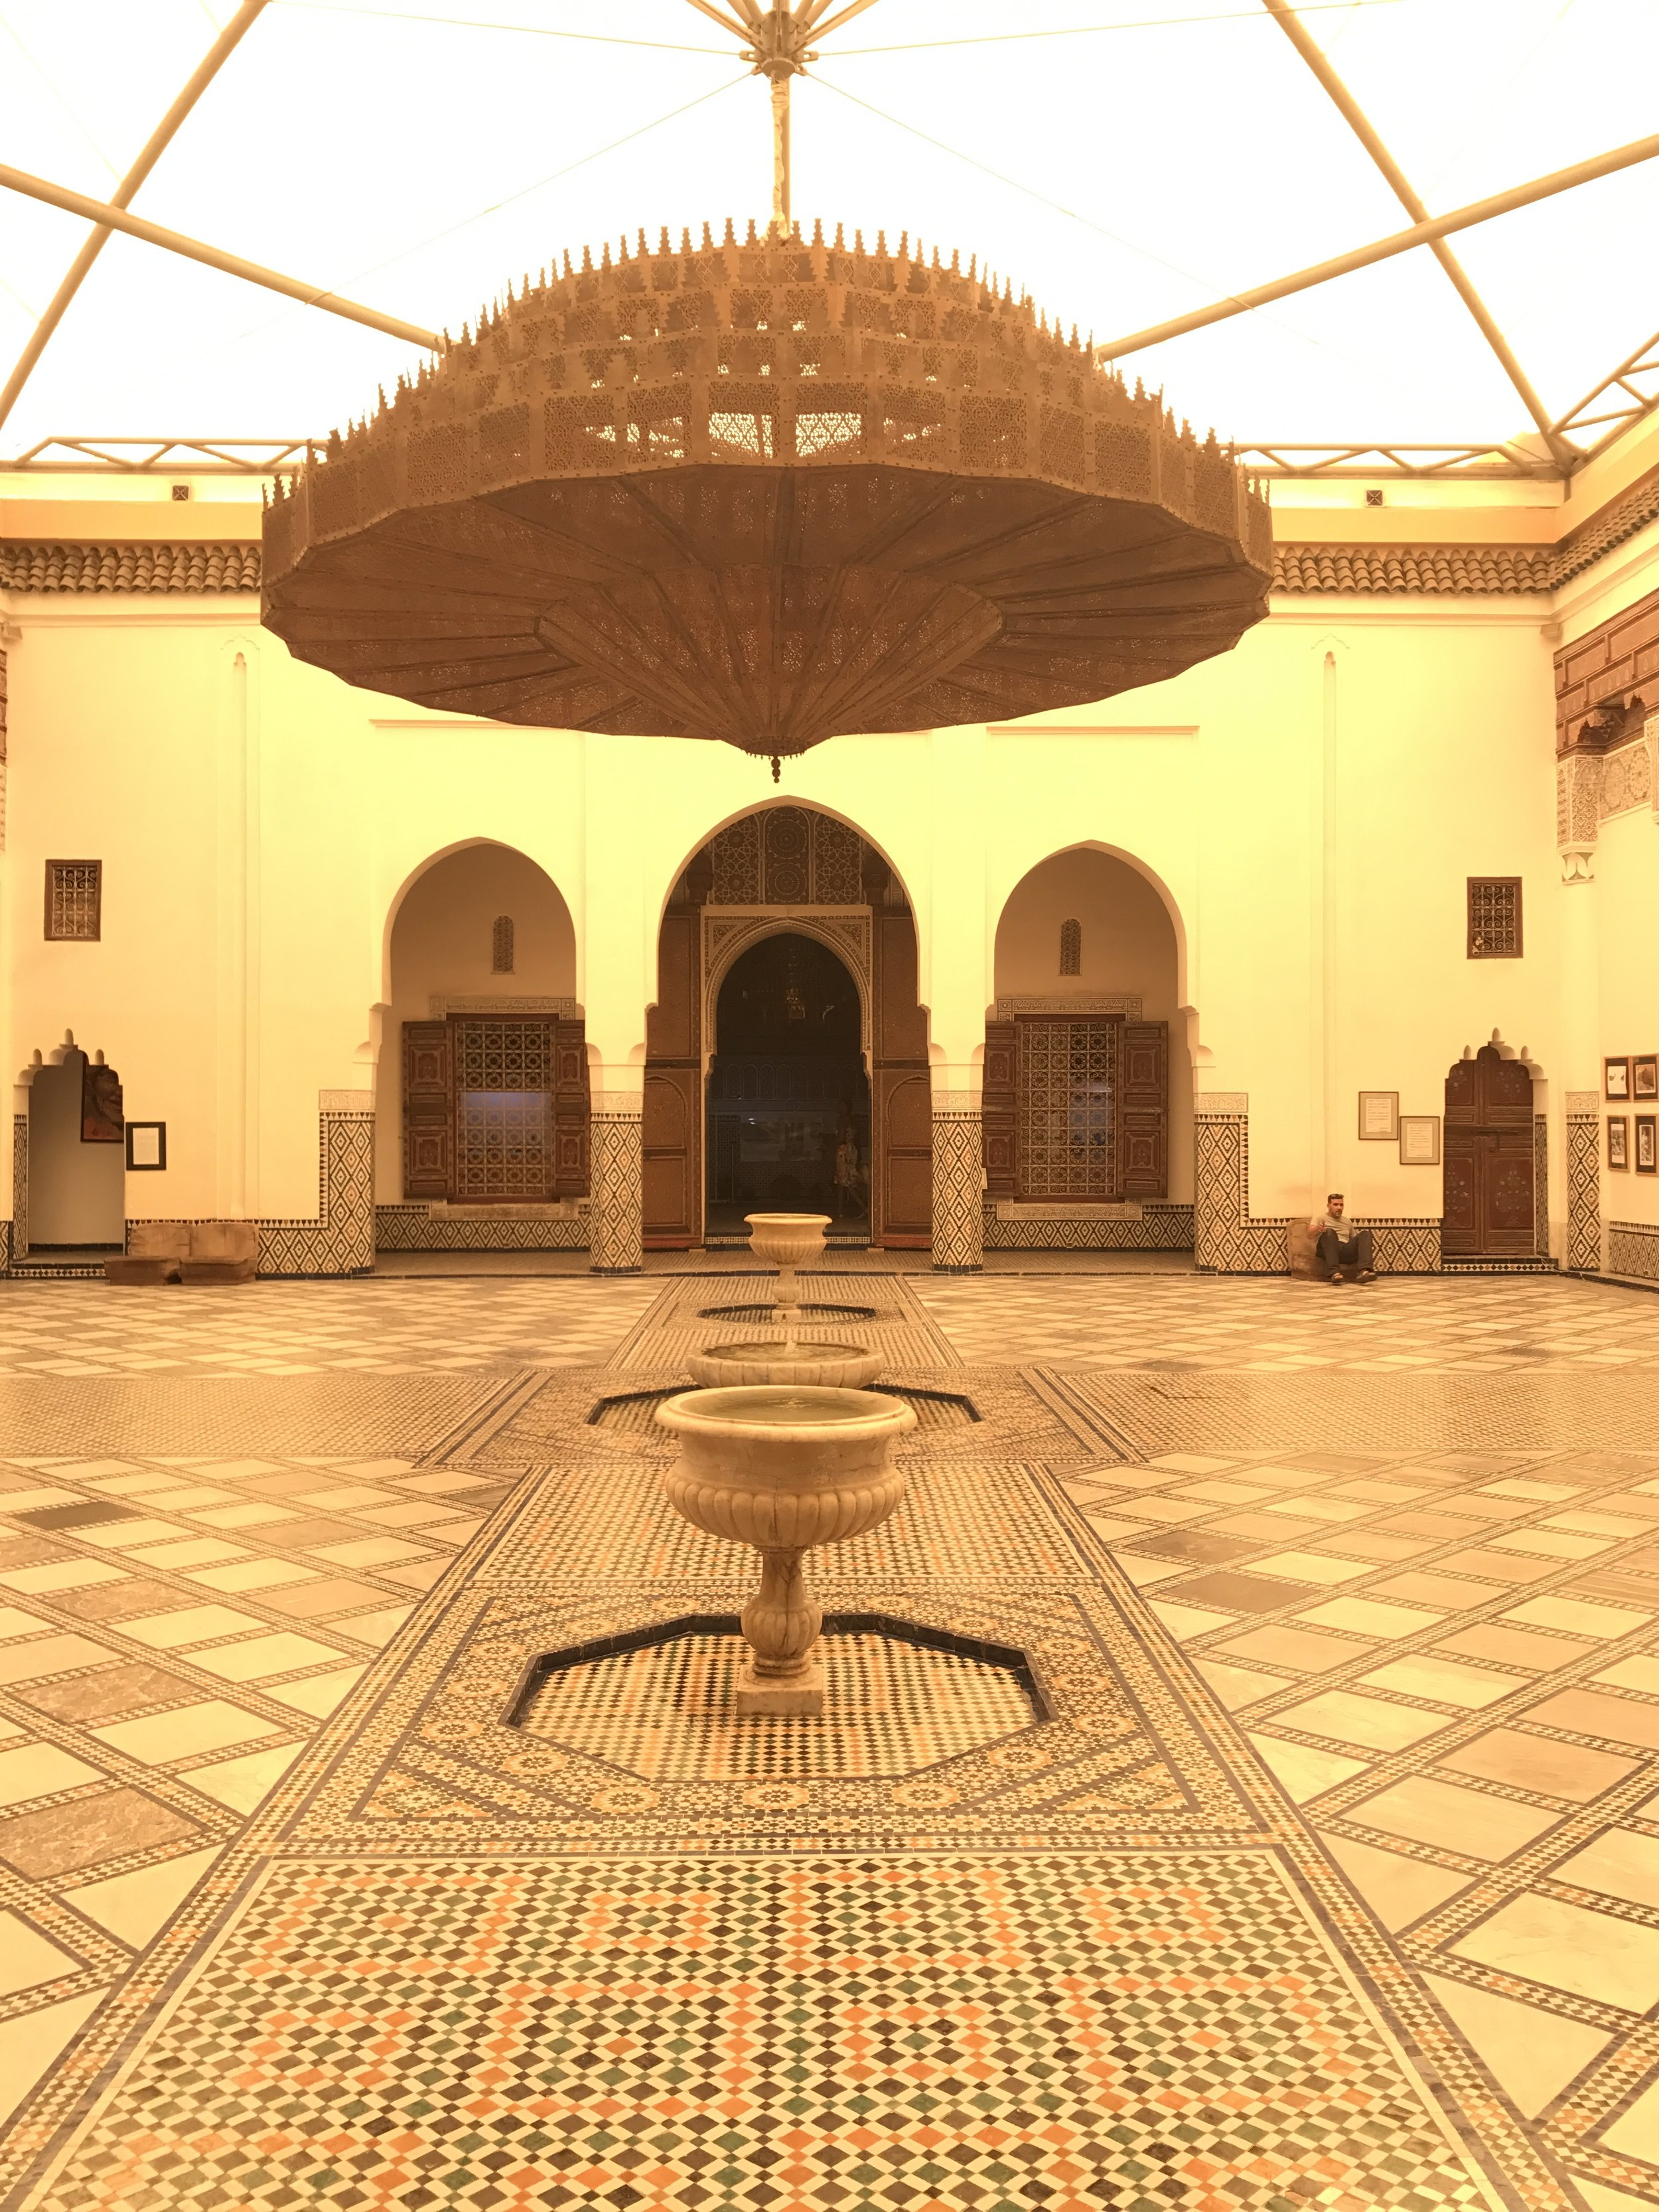 Hand carved metal chandelier in the central courtyard of Marrakech Museum.